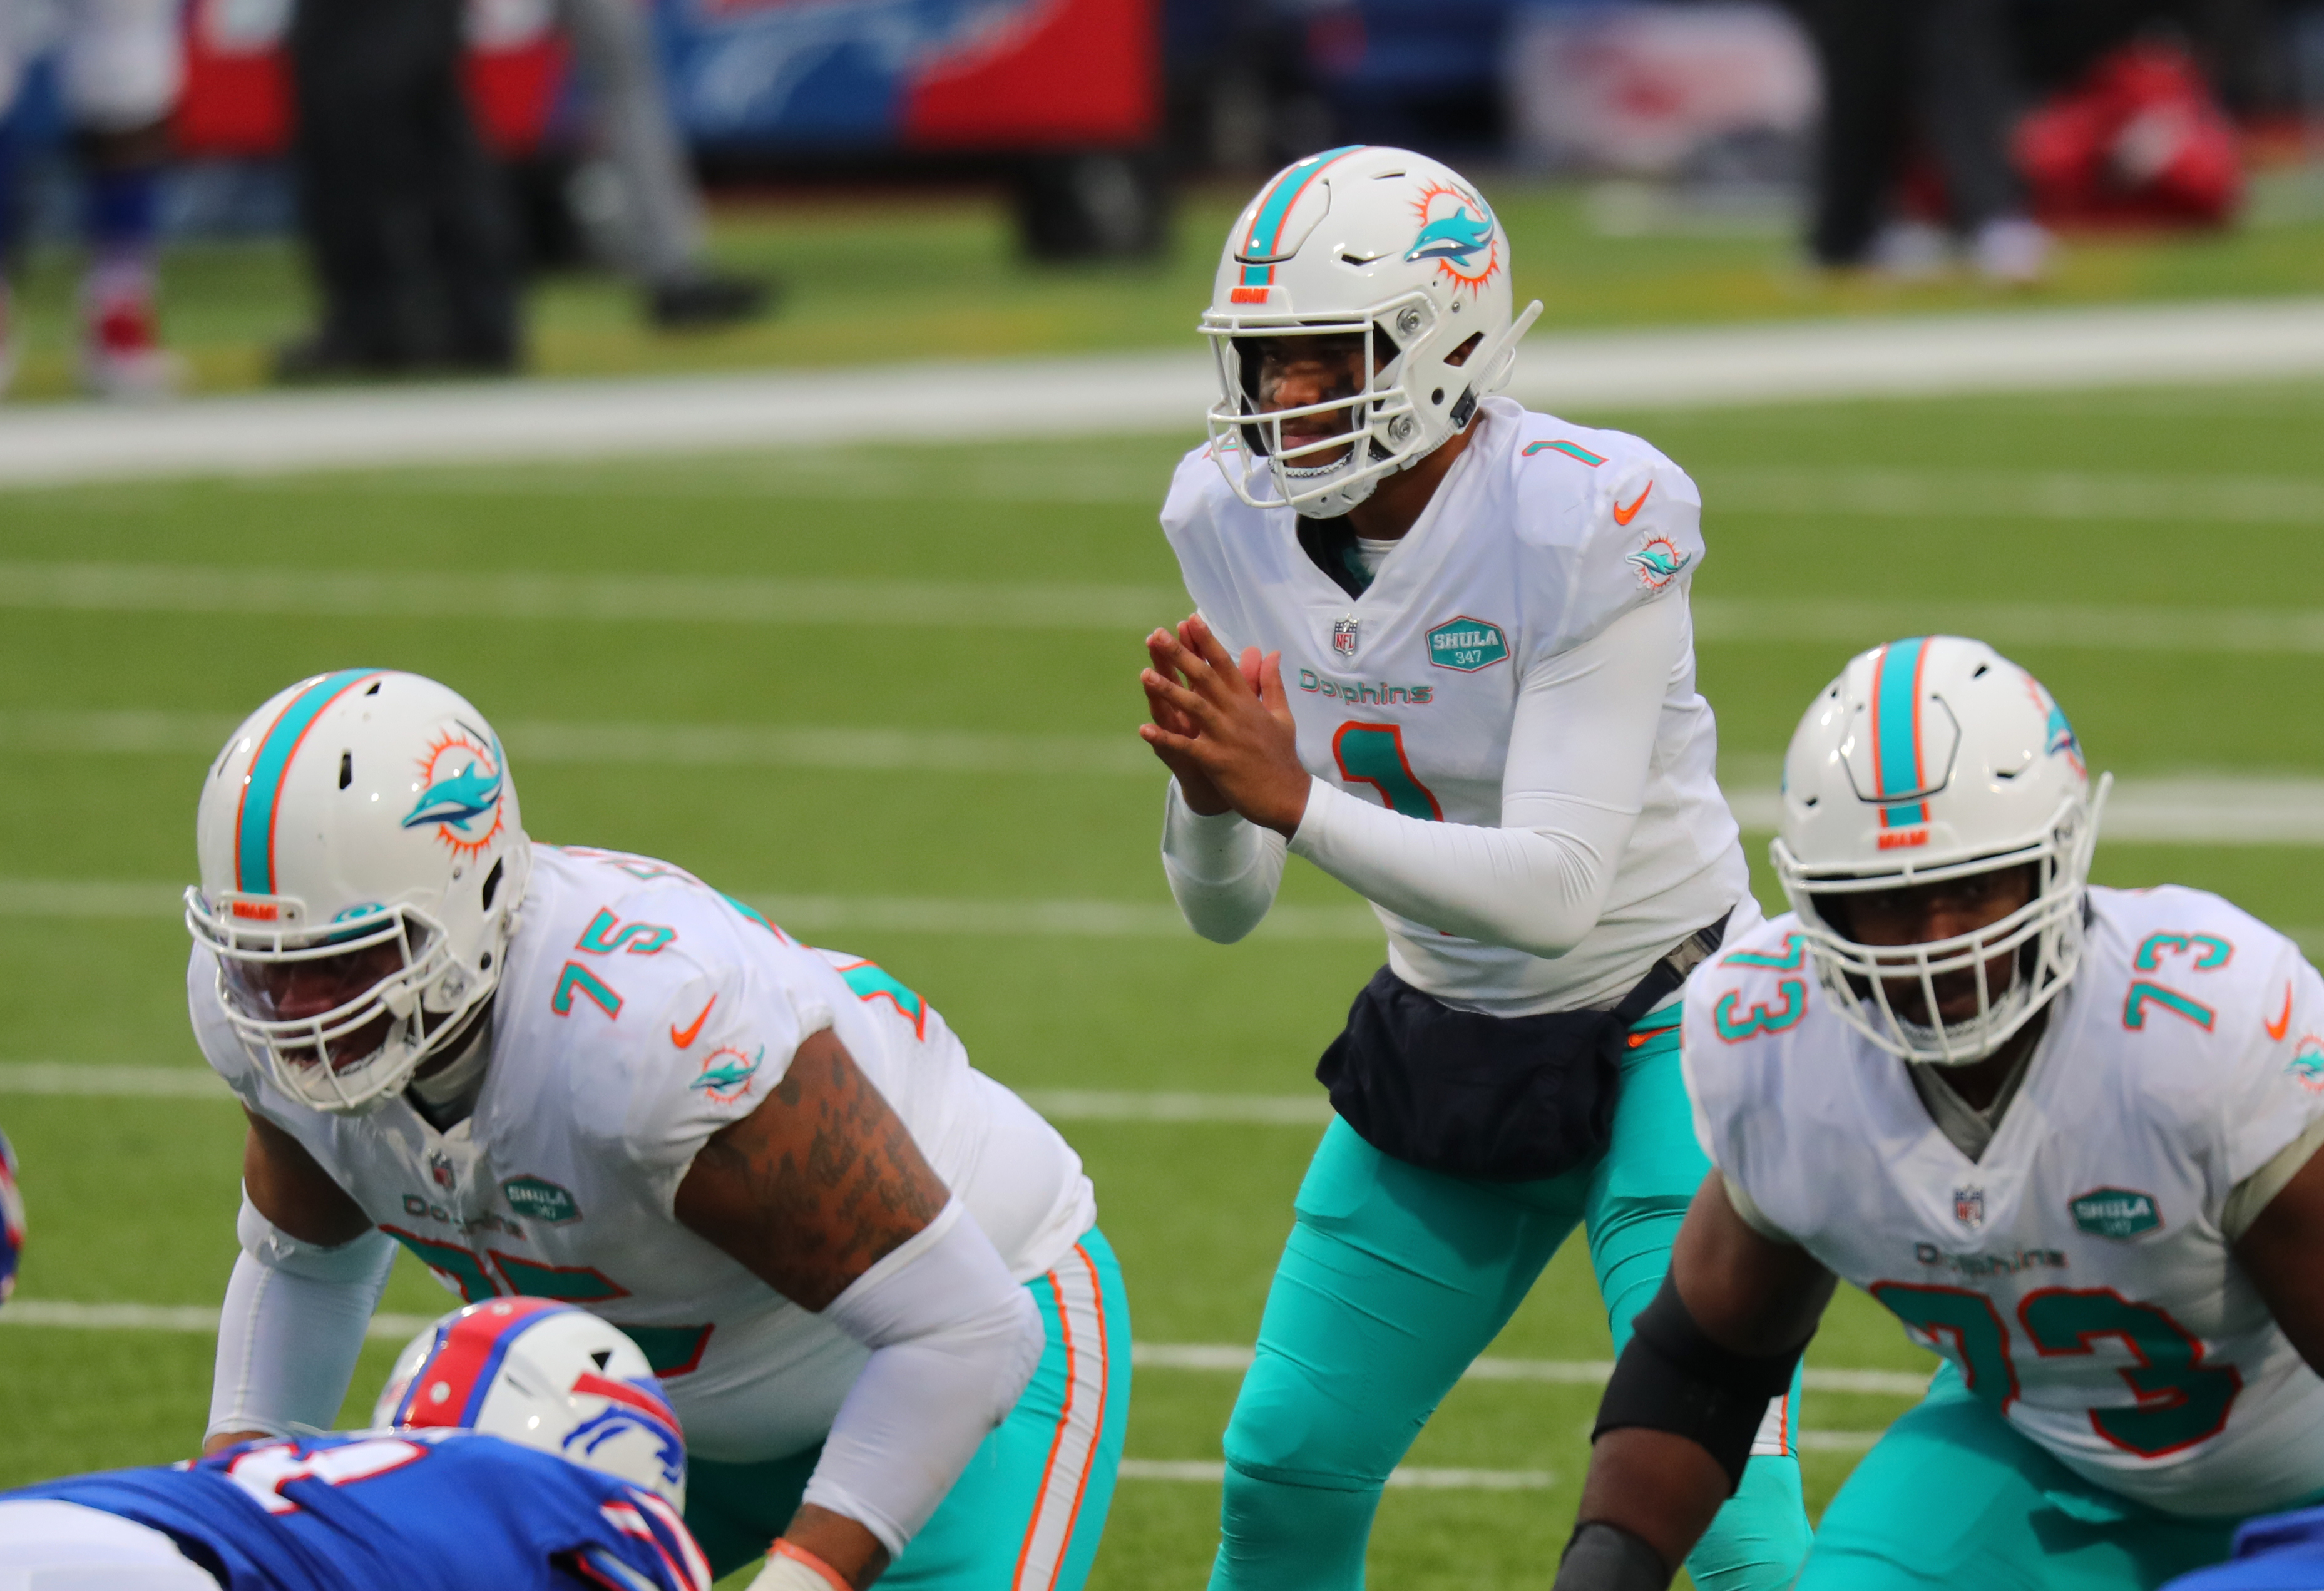 Tua Tagovailoa #1 of the Miami Dolphins waits for the snap during a game against the Buffalo Bills at Bills Stadium on January 3, 2021 in Orchard Park, New York.